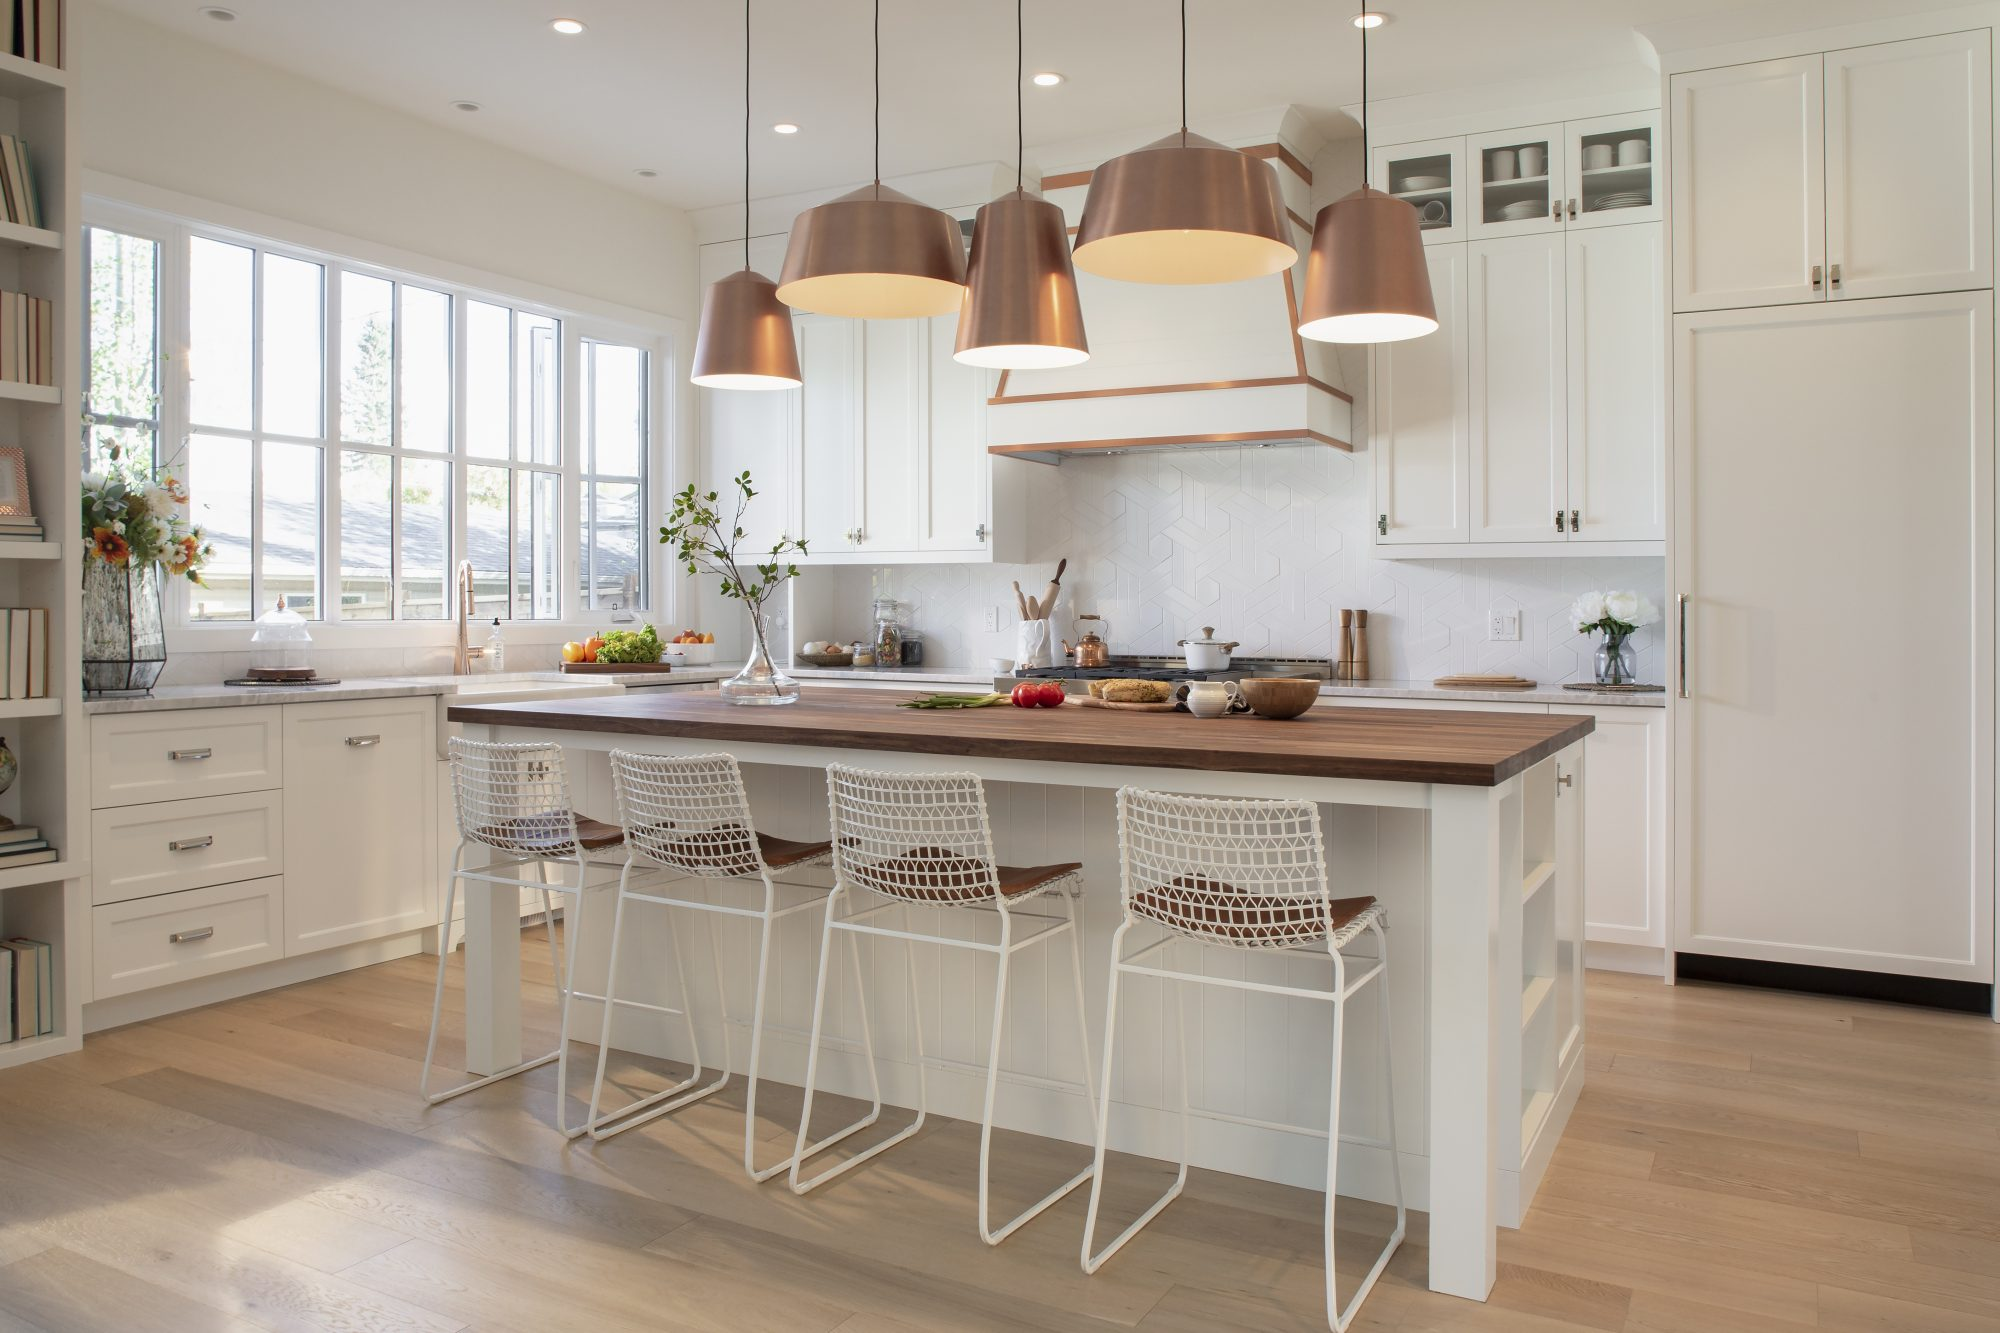 Small Kitchen? The Property Brothers Say the Solution is in Light Flooring